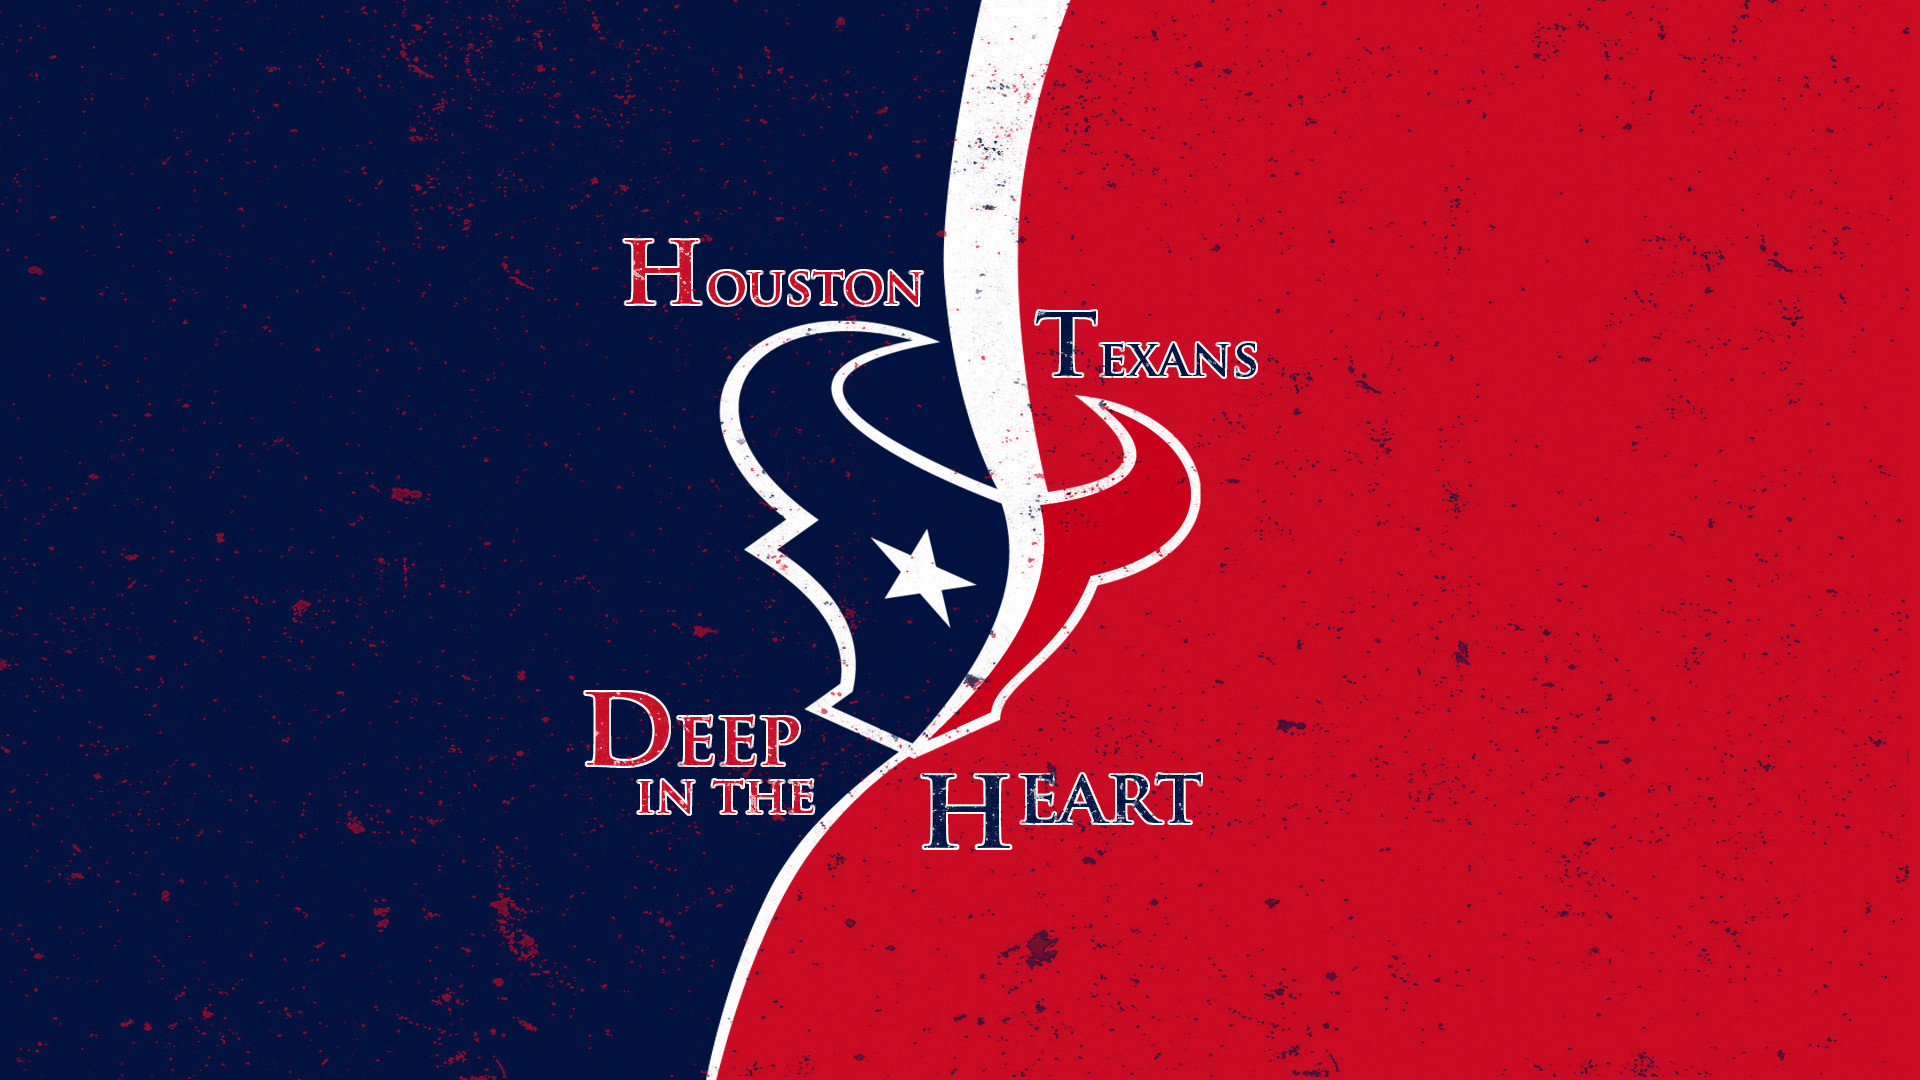 Houston Texans HD Wallpaper 1920x1080 1920x1080